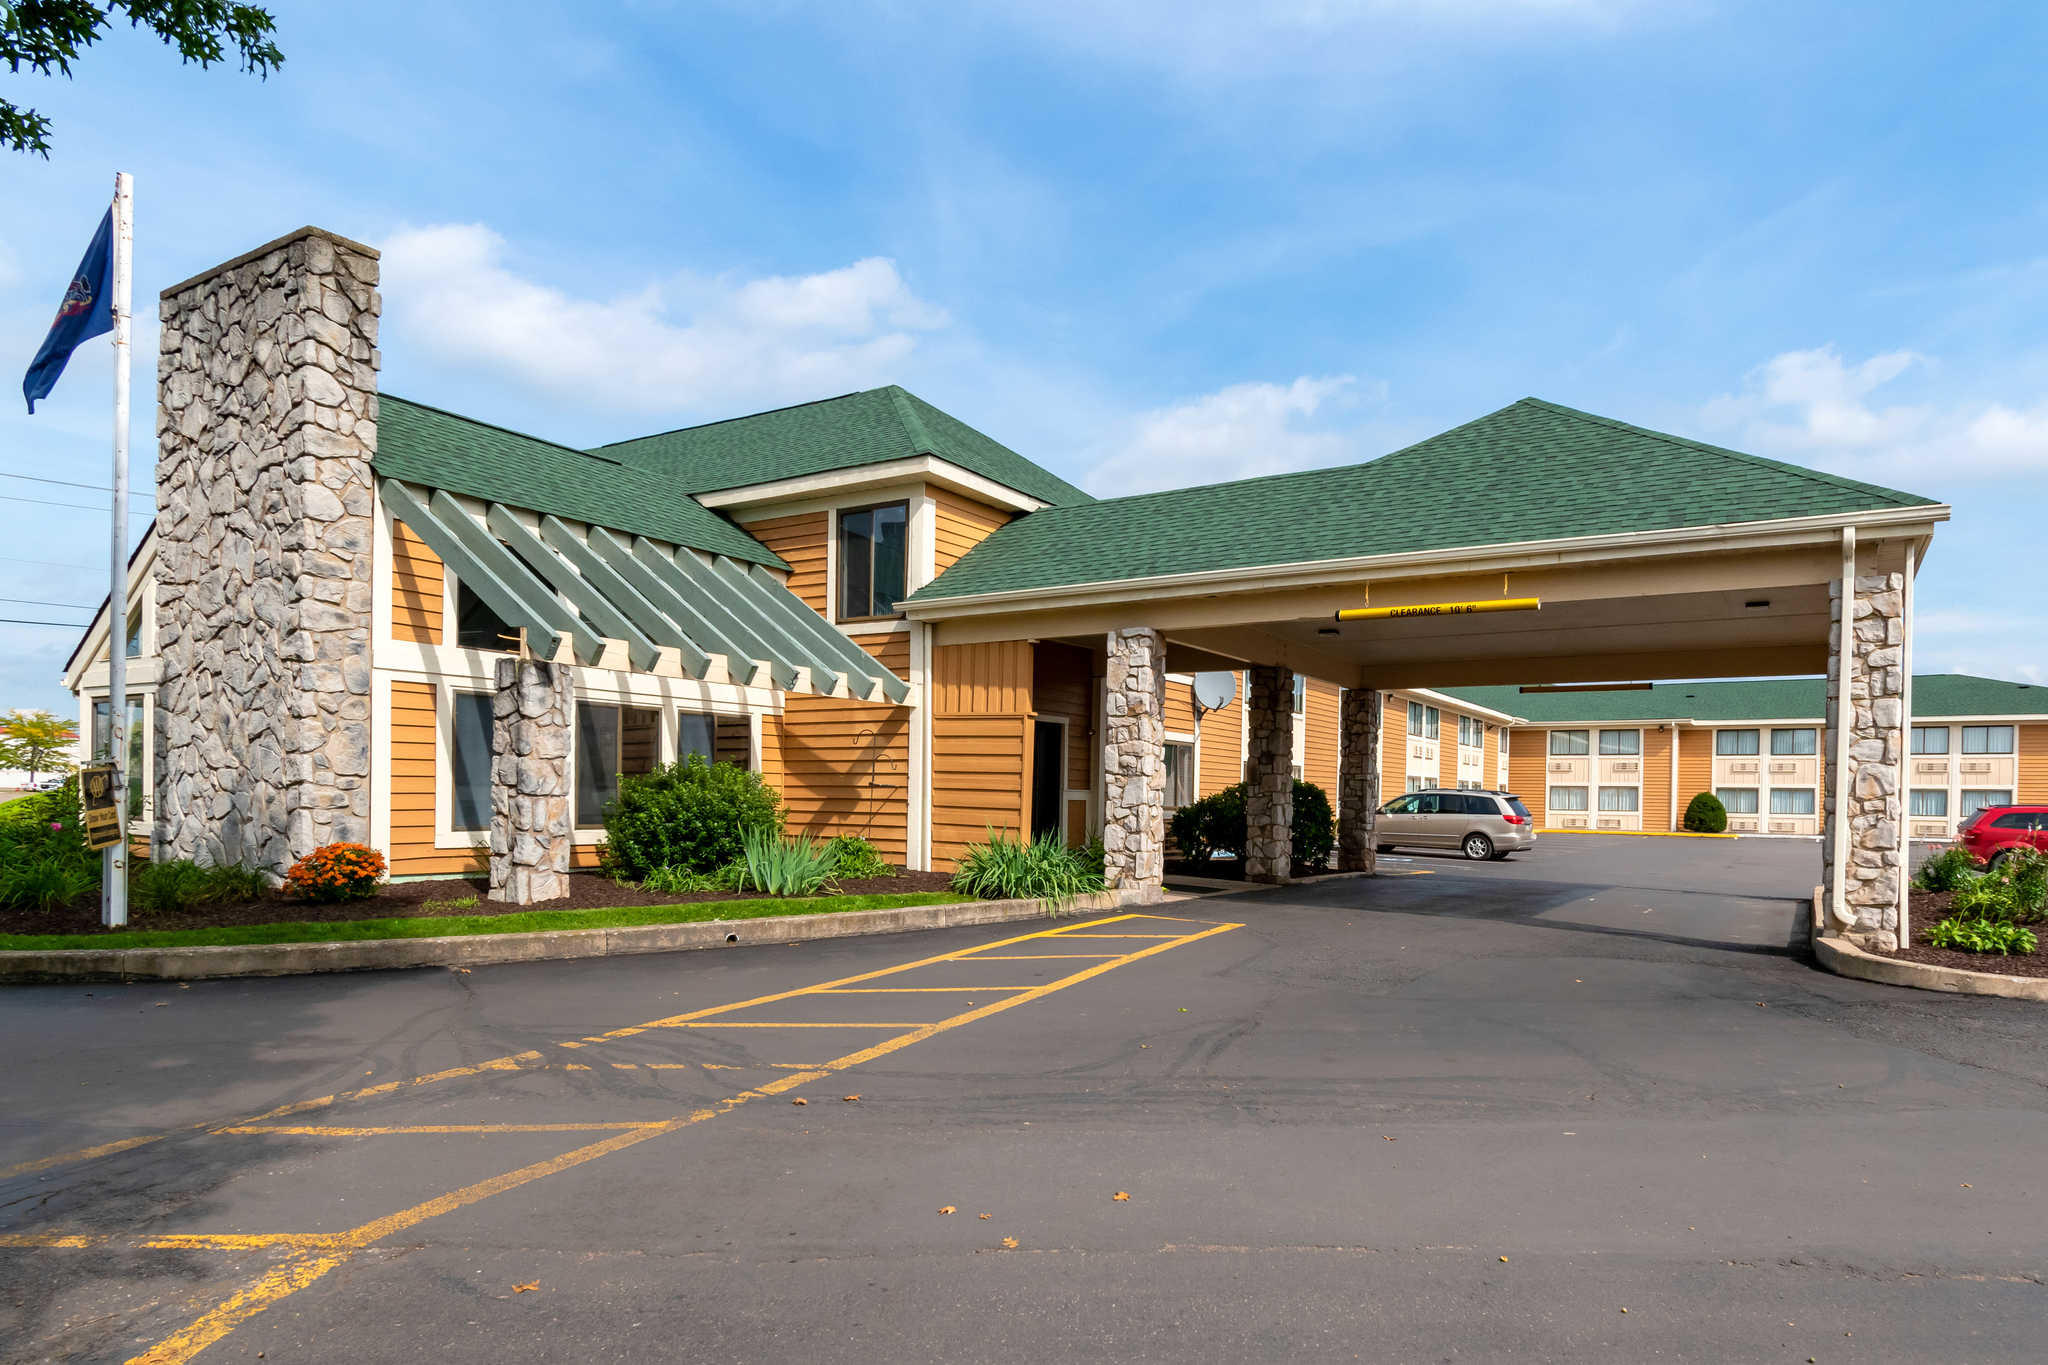 quality inn coupons bloomsburg pa near me 8coupons. Black Bedroom Furniture Sets. Home Design Ideas